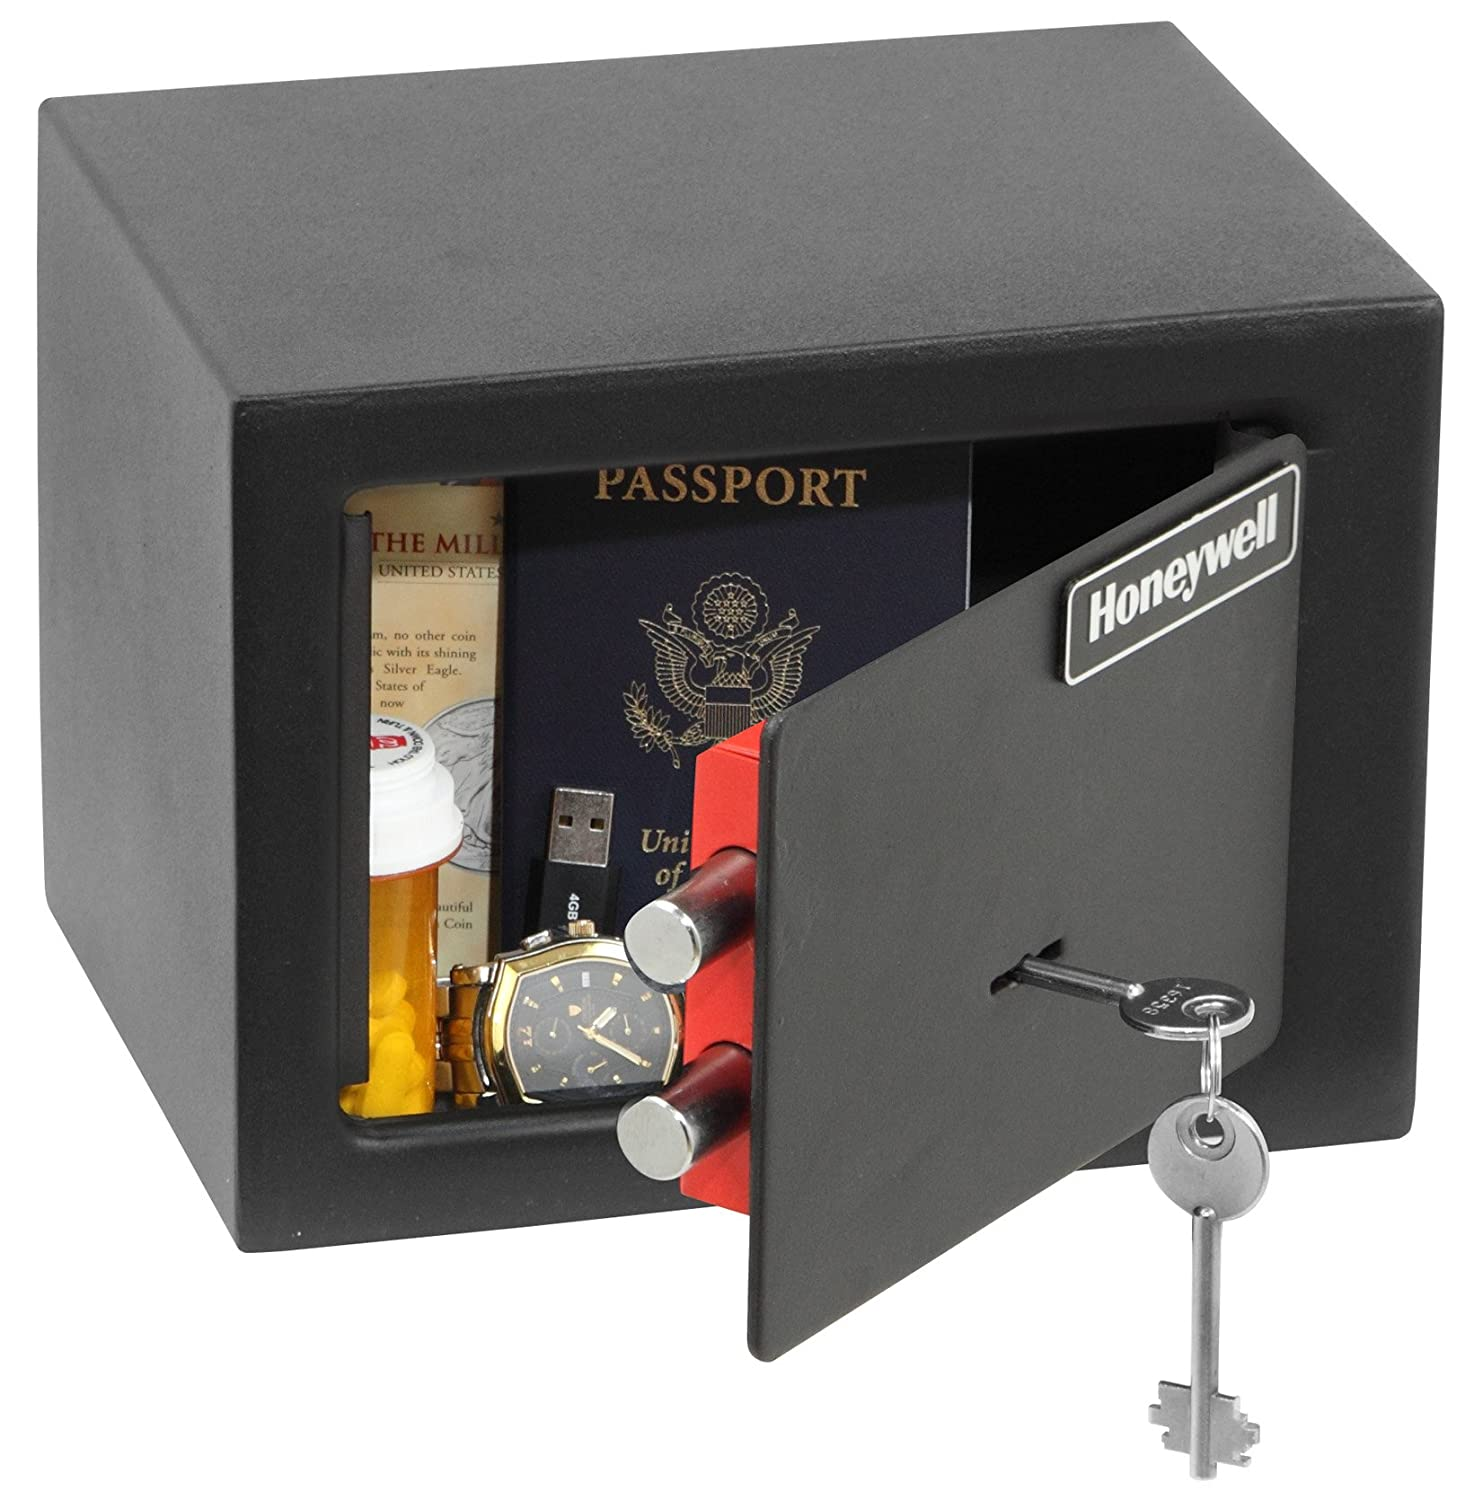 Honeywell 5002 Small Steel Security Safe 0.18 Cubic Feet